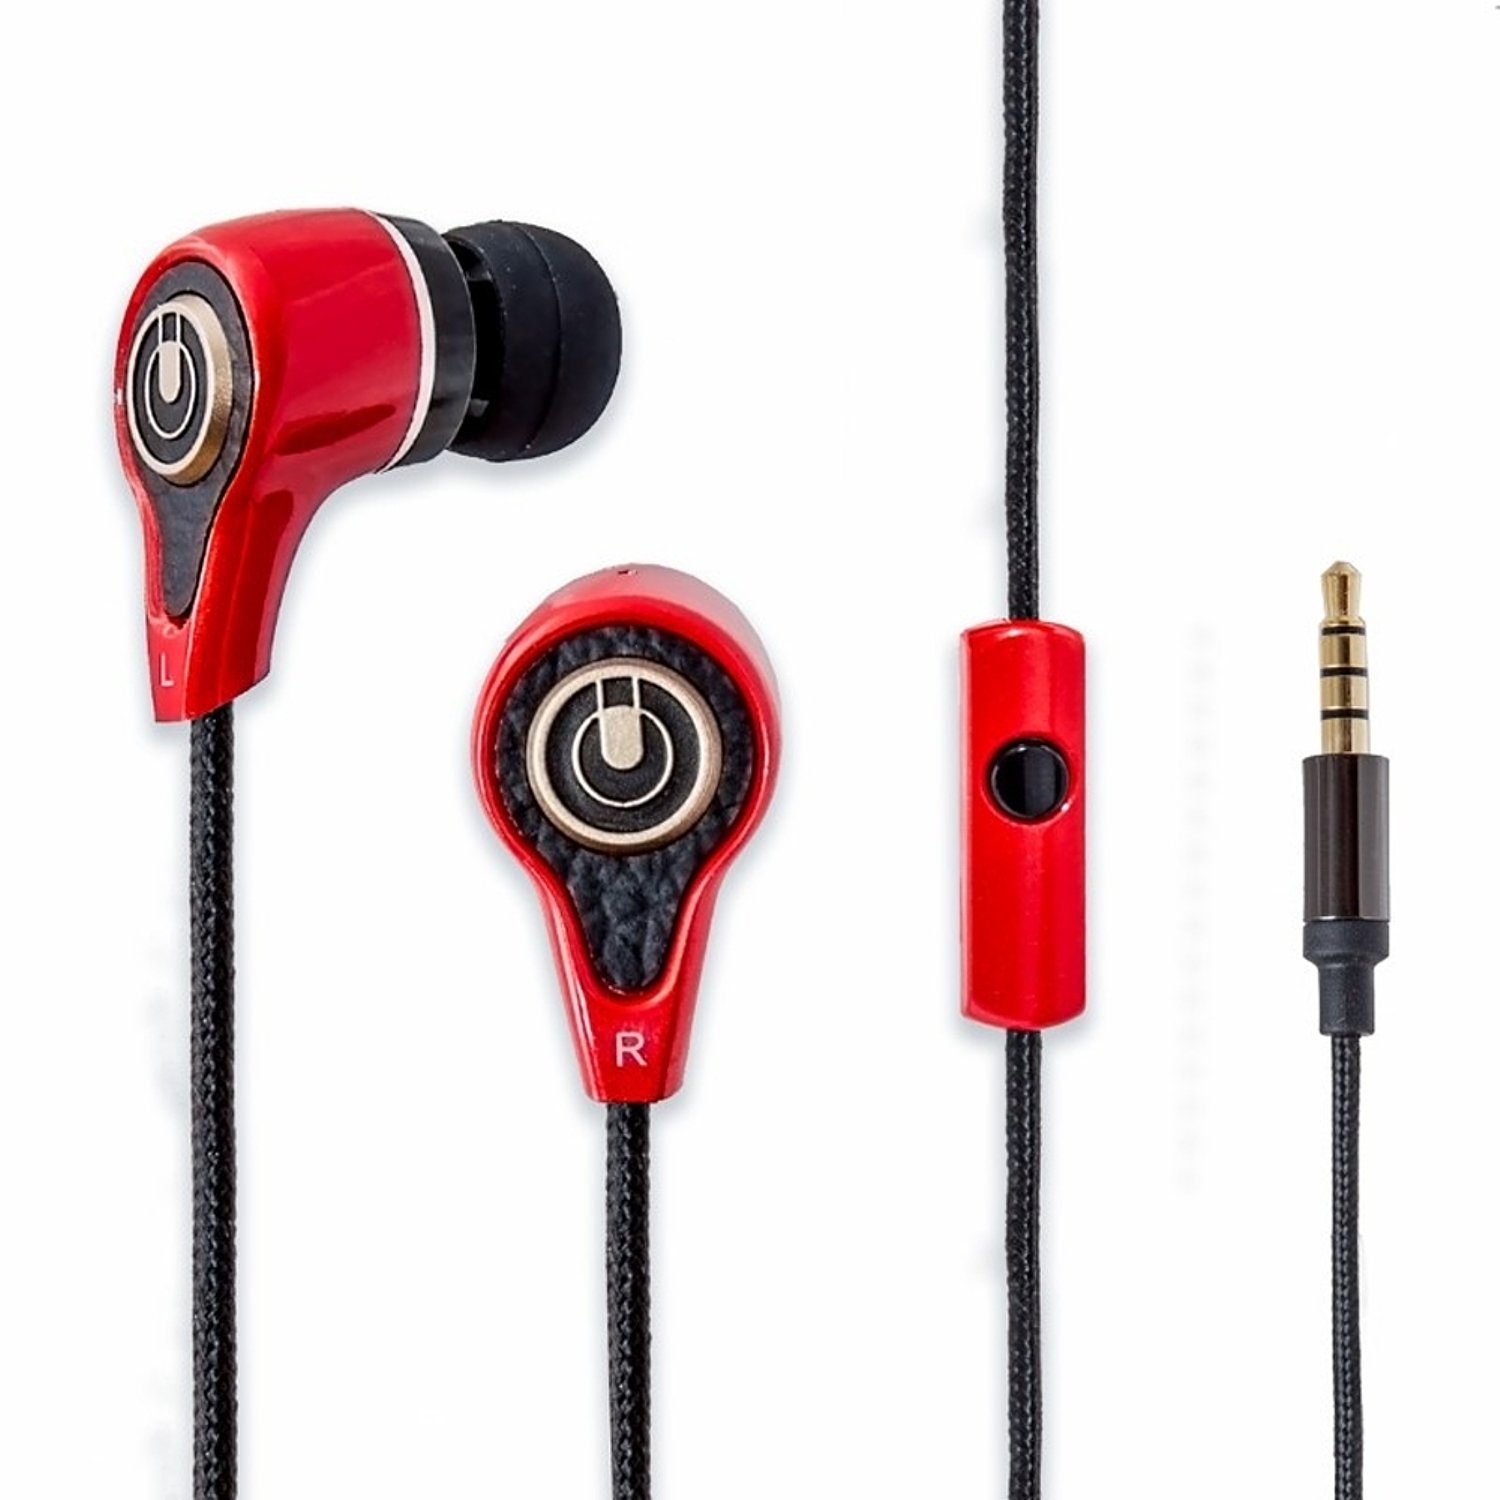 SYBA SY-AUD63088 / Multimedia Oblanc SY-AUD63088 Earset / 3.5MM 44IN F/ SMARTPHONE TABLET RED